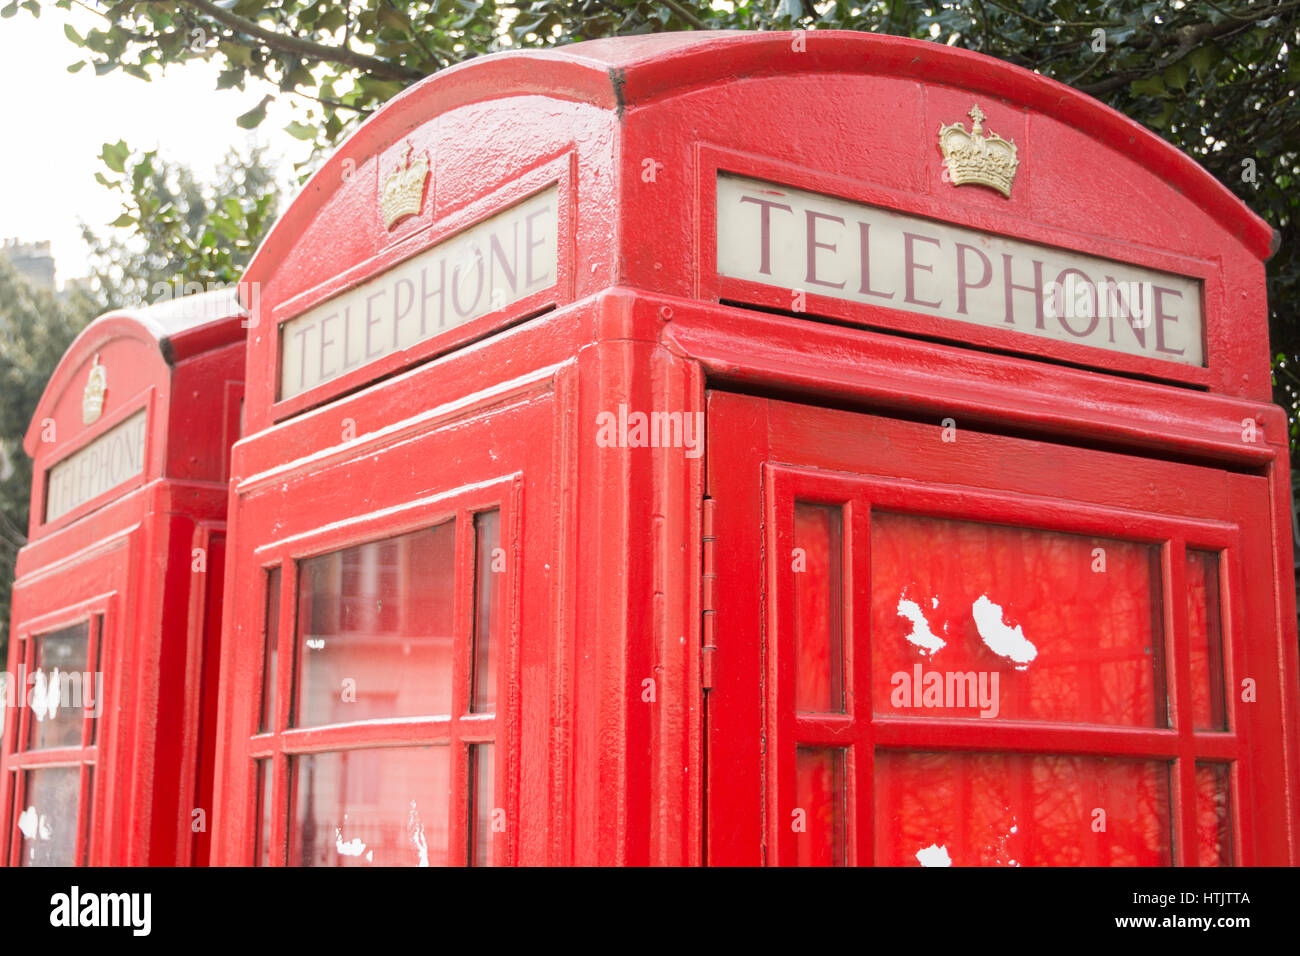 A red telephone kiosk in Russell Square, London, England, UK - Stock Image